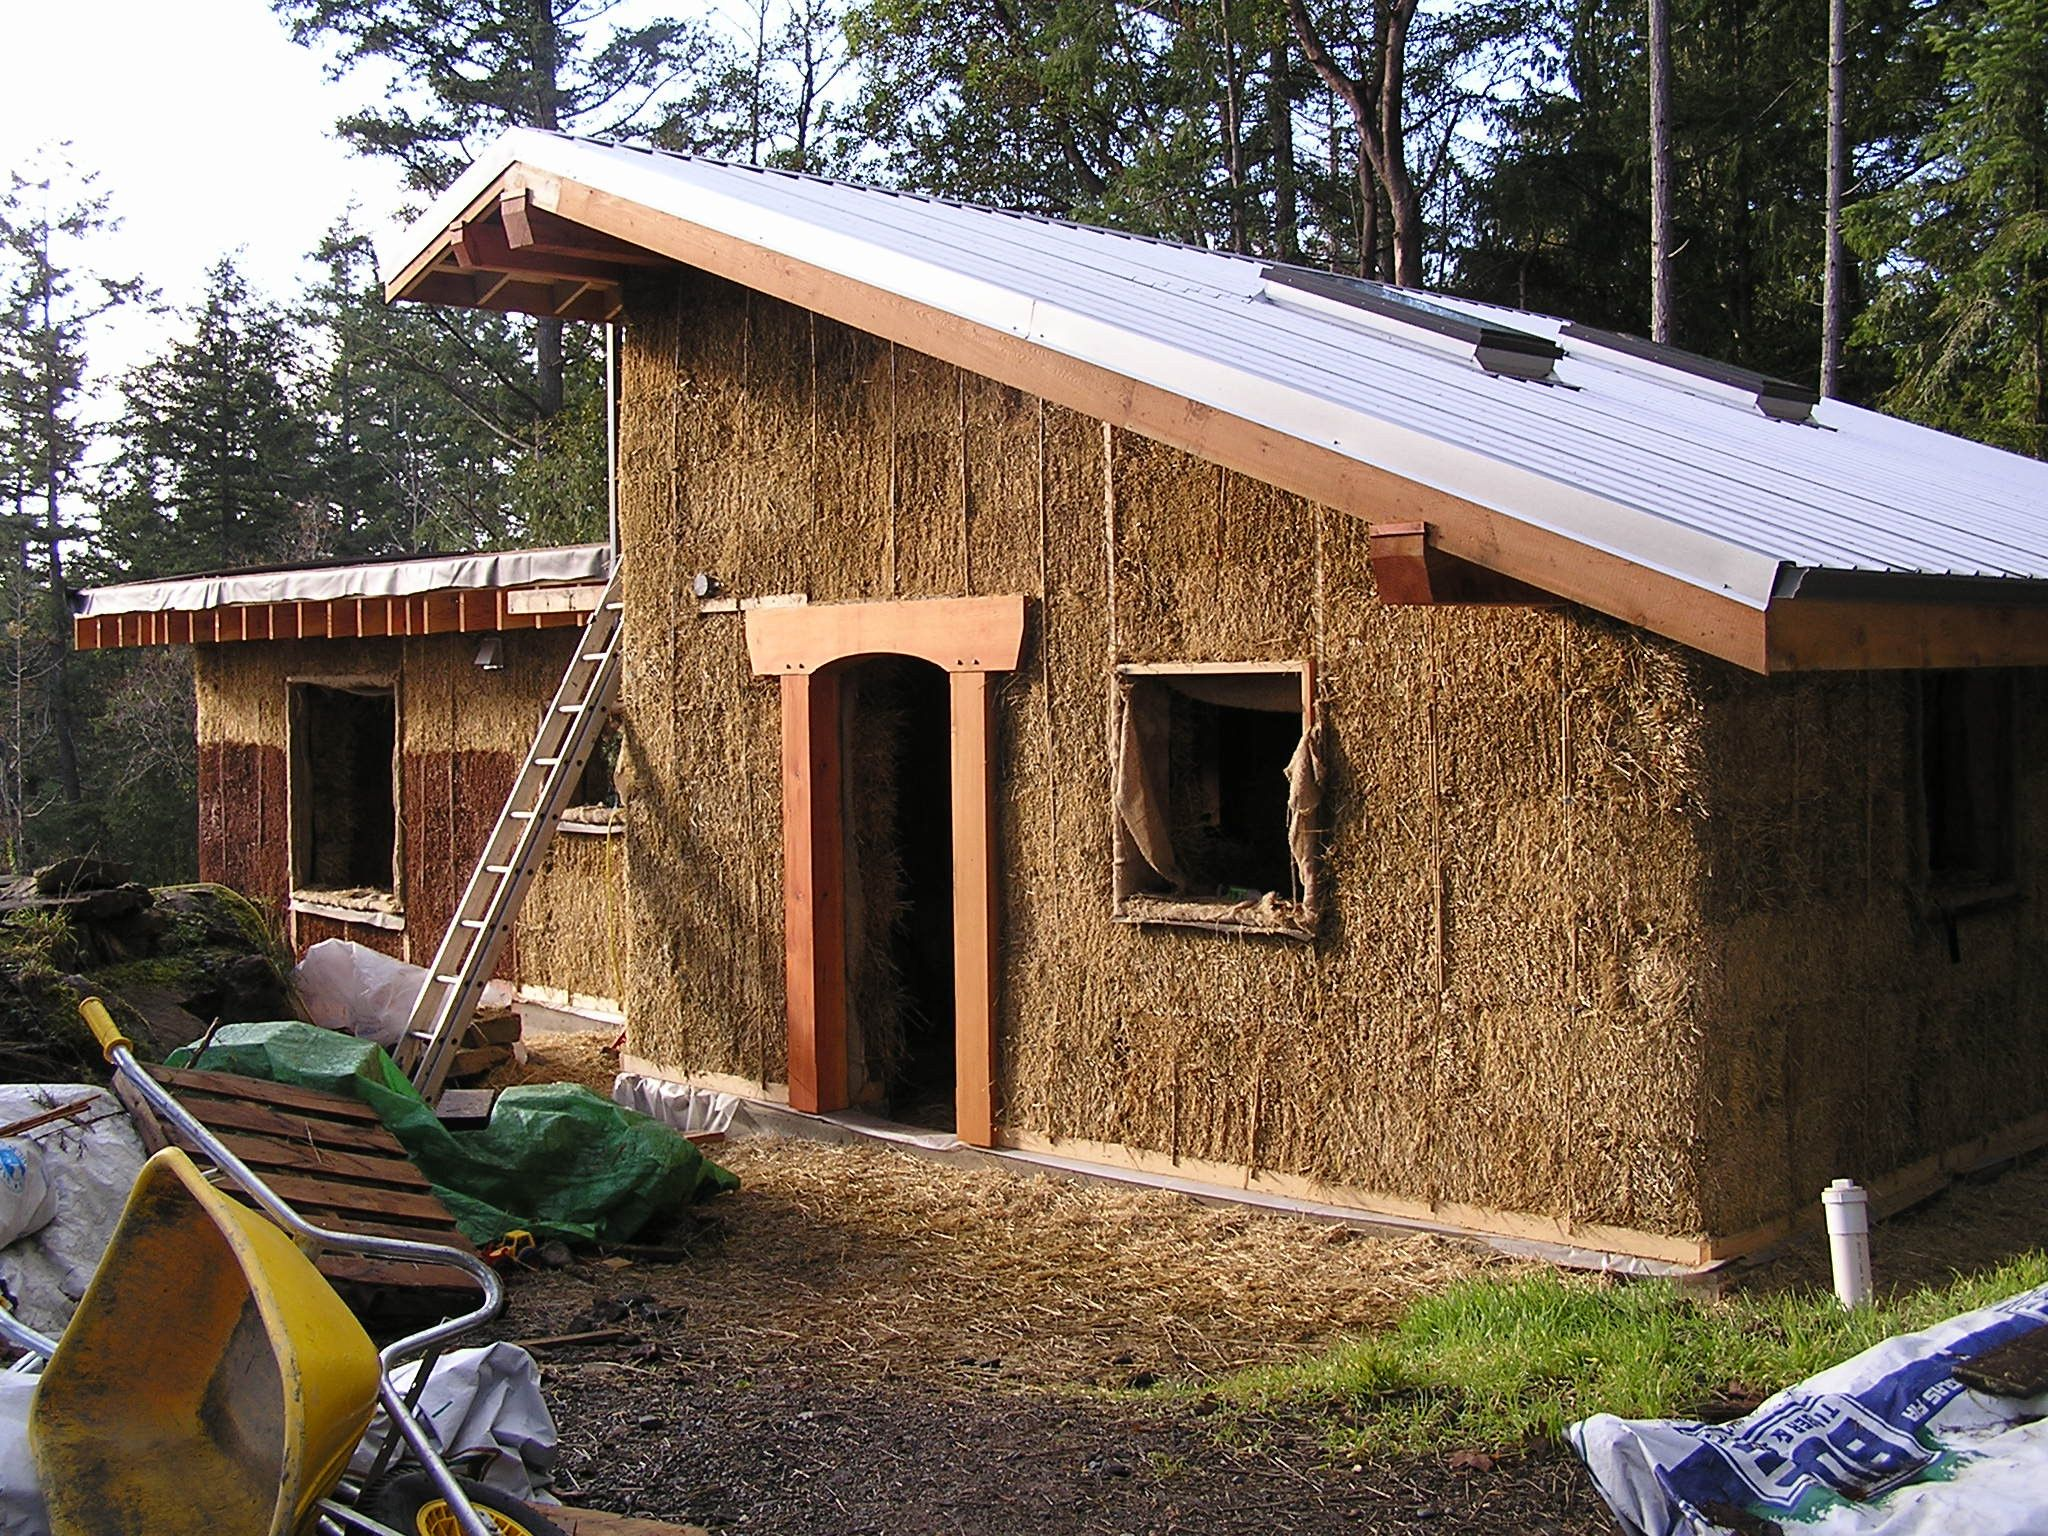 16 Unique Straw Bale House Plans Gallery Natural Building Straw Bale House Cob House